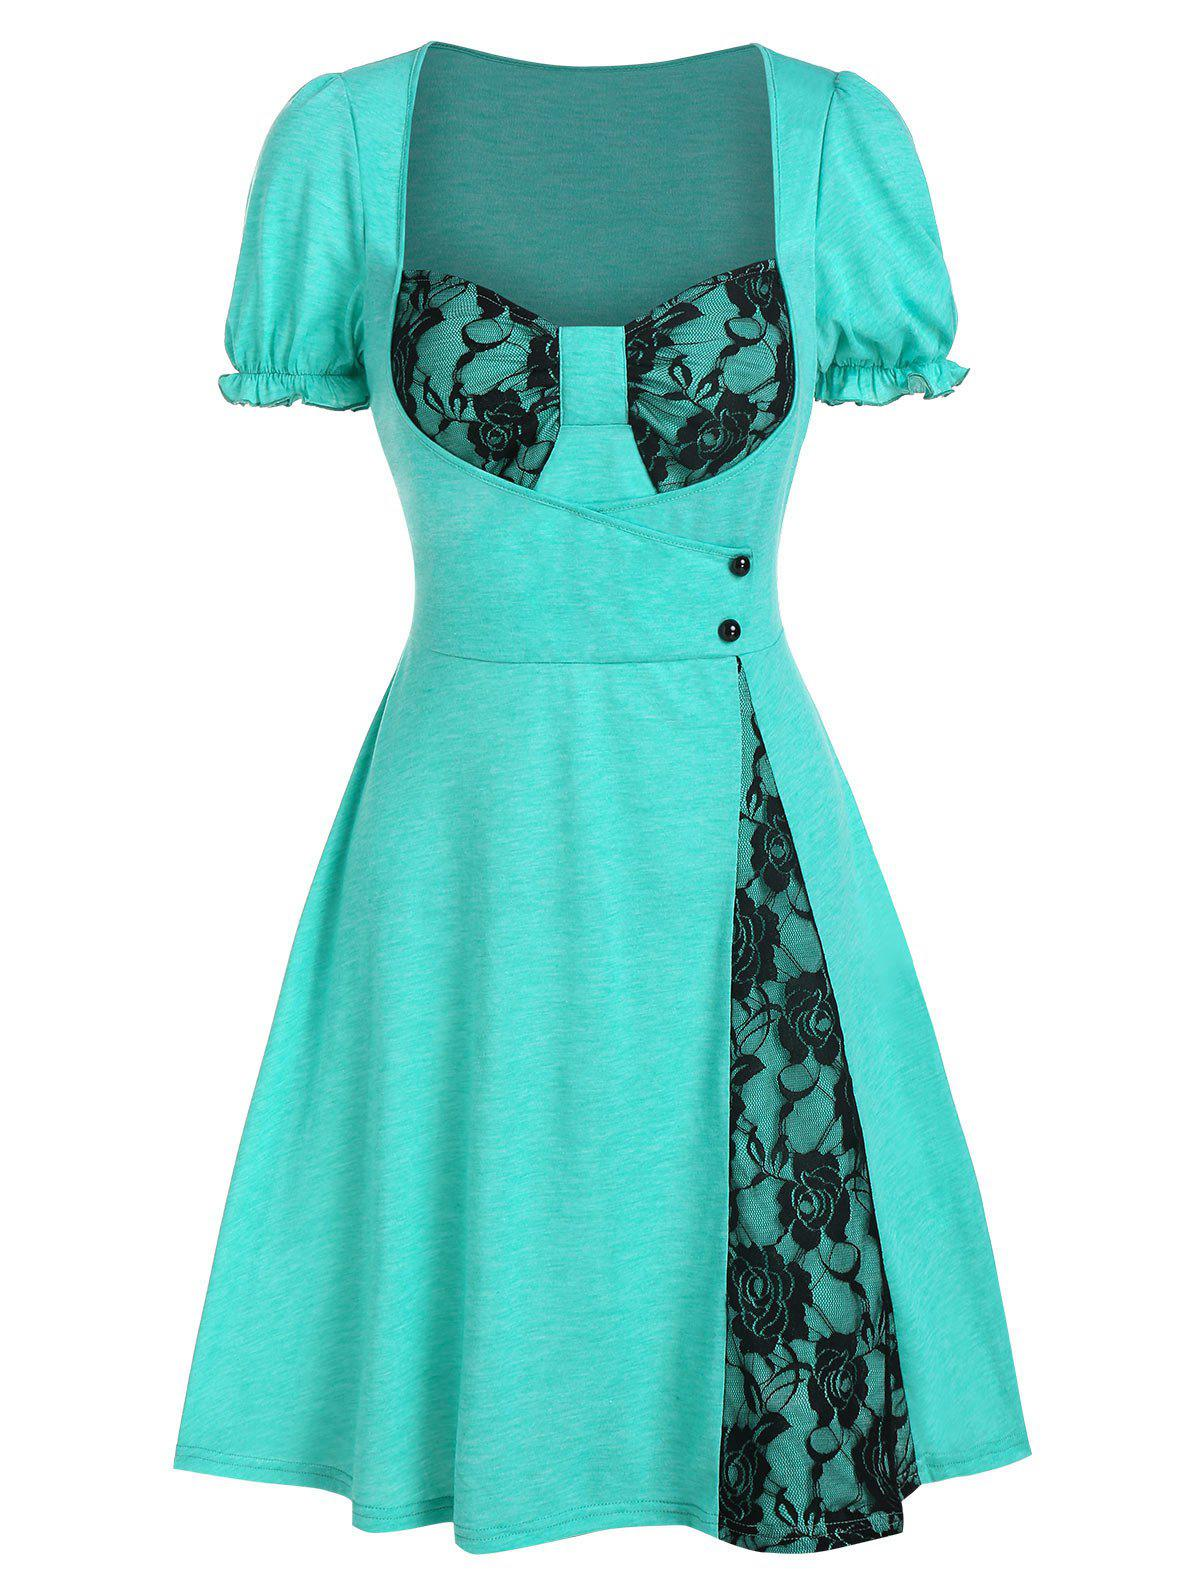 Flower Lace Insert Mock Button Flare Dress - MEDIUM TURQUOISE L